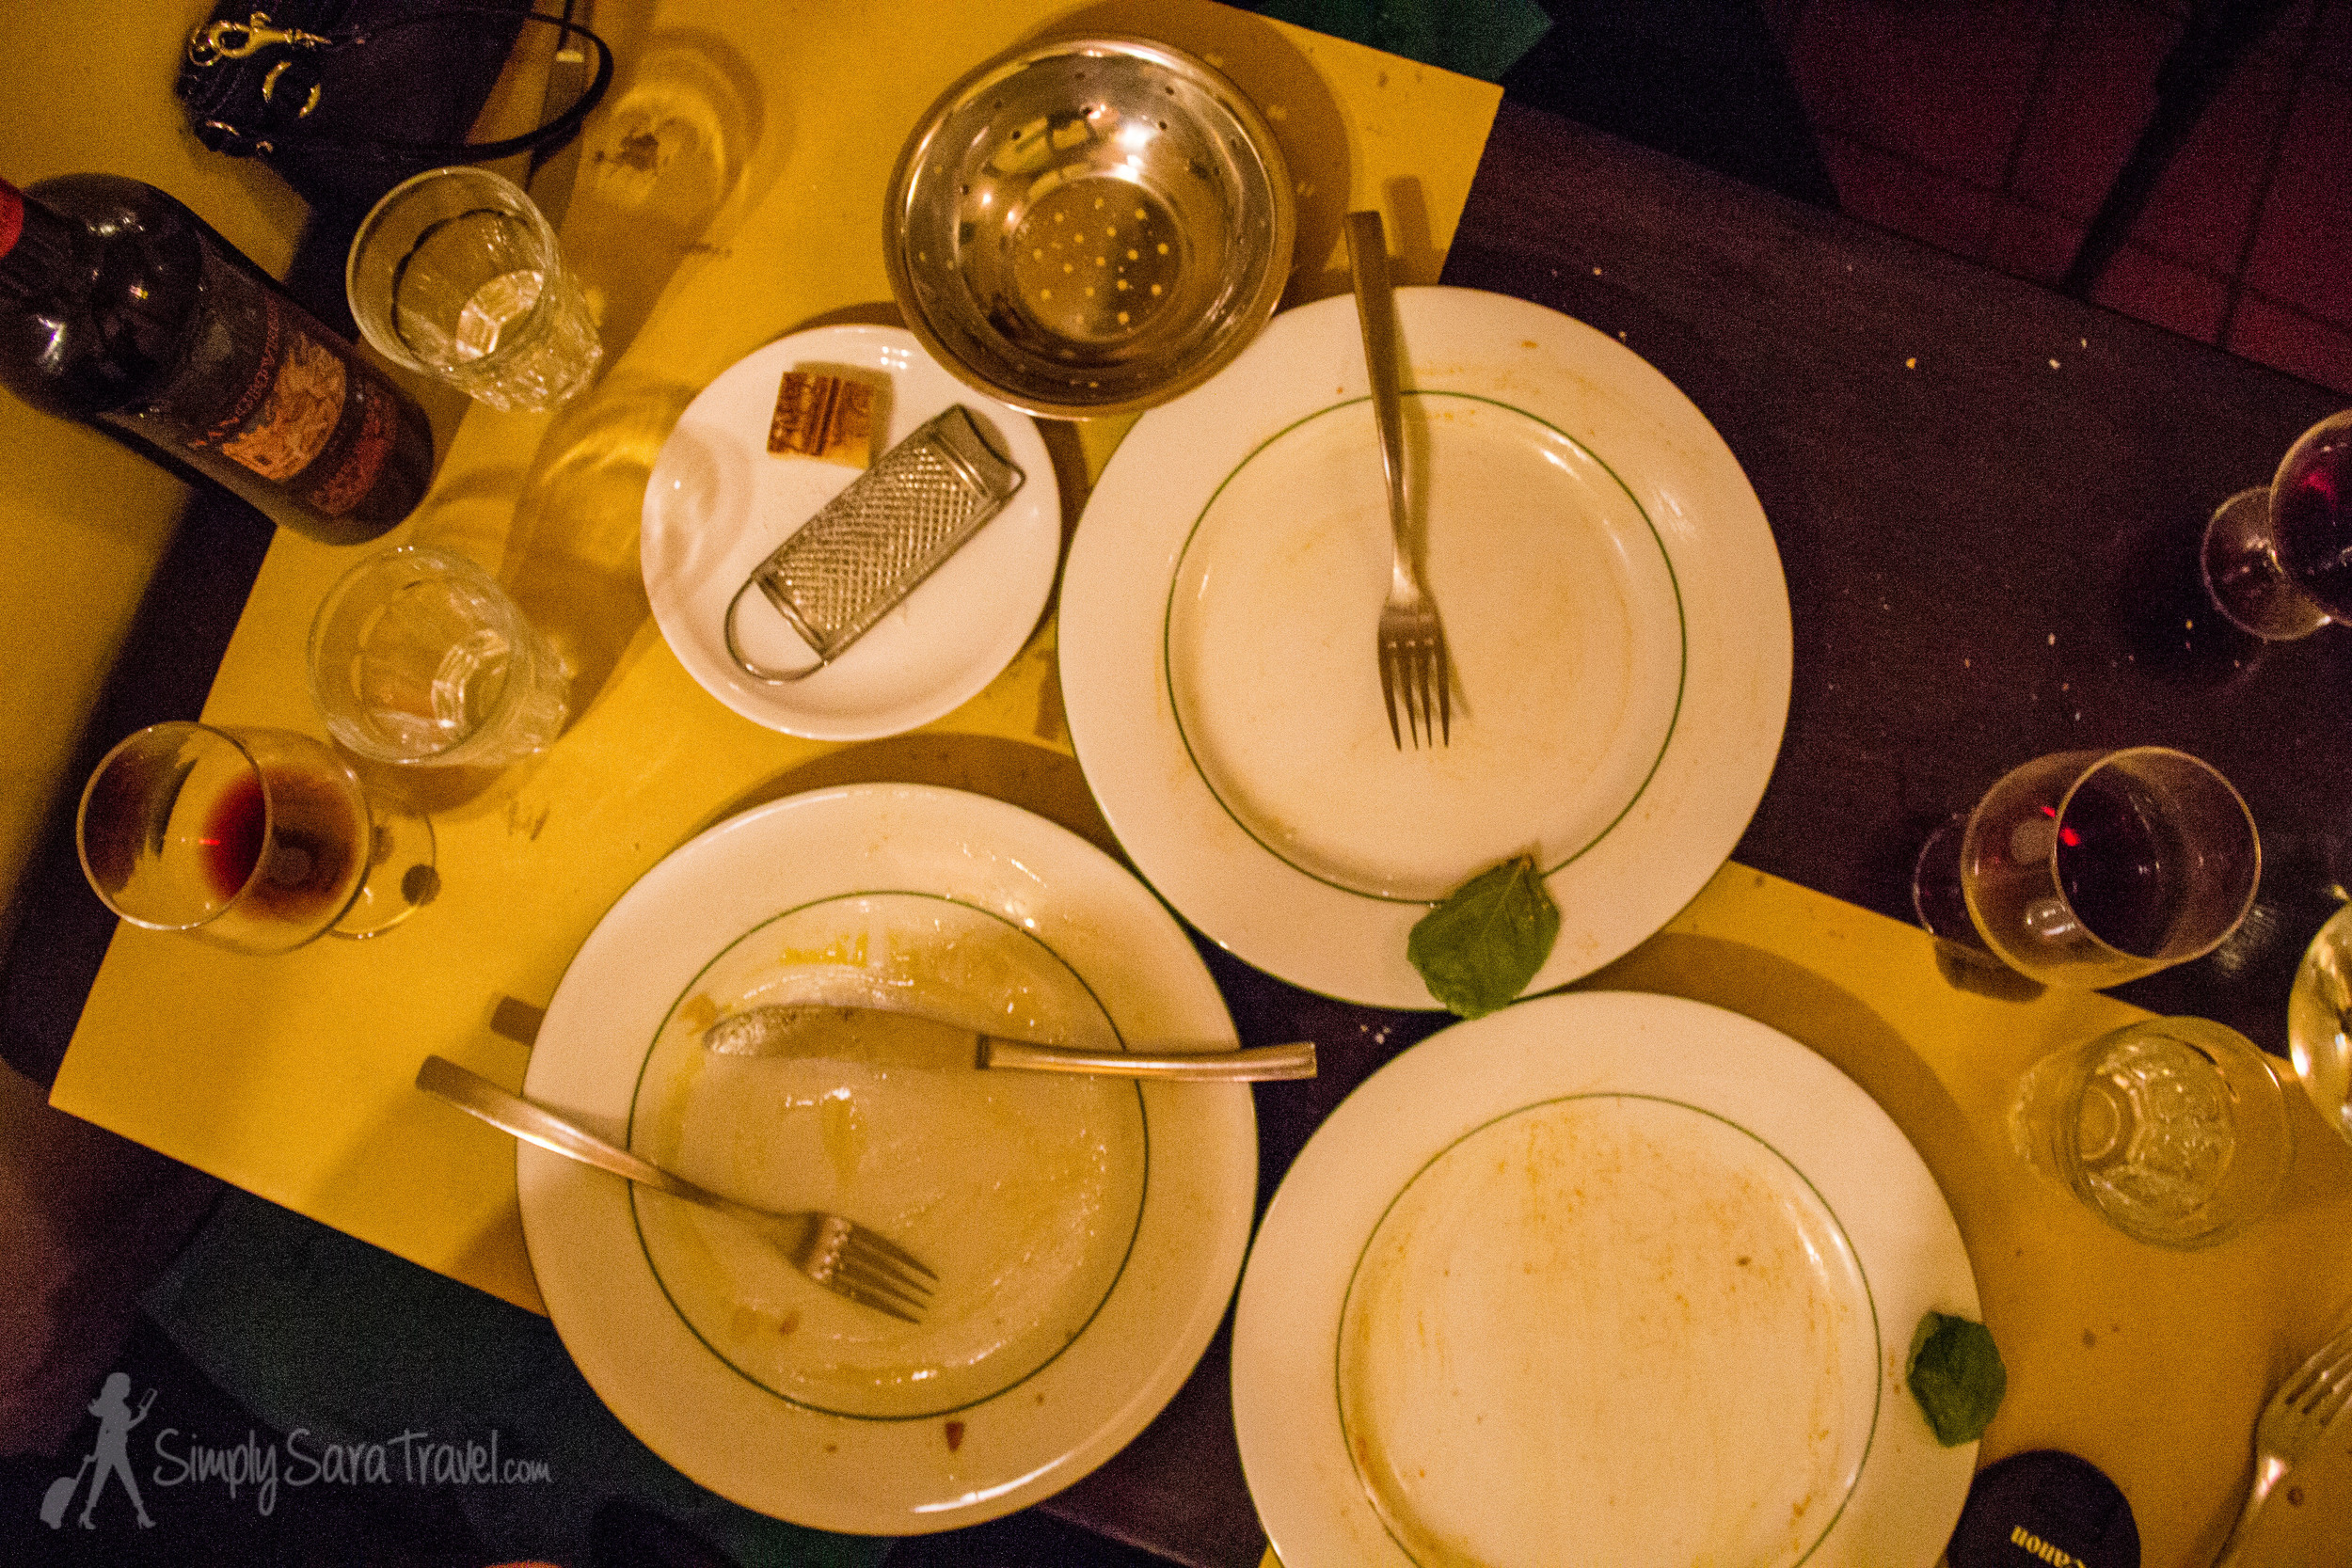 No one leaves without clearing their plate here! (Also note the small piece of Parmesan cheese and personal grater every table gets.)